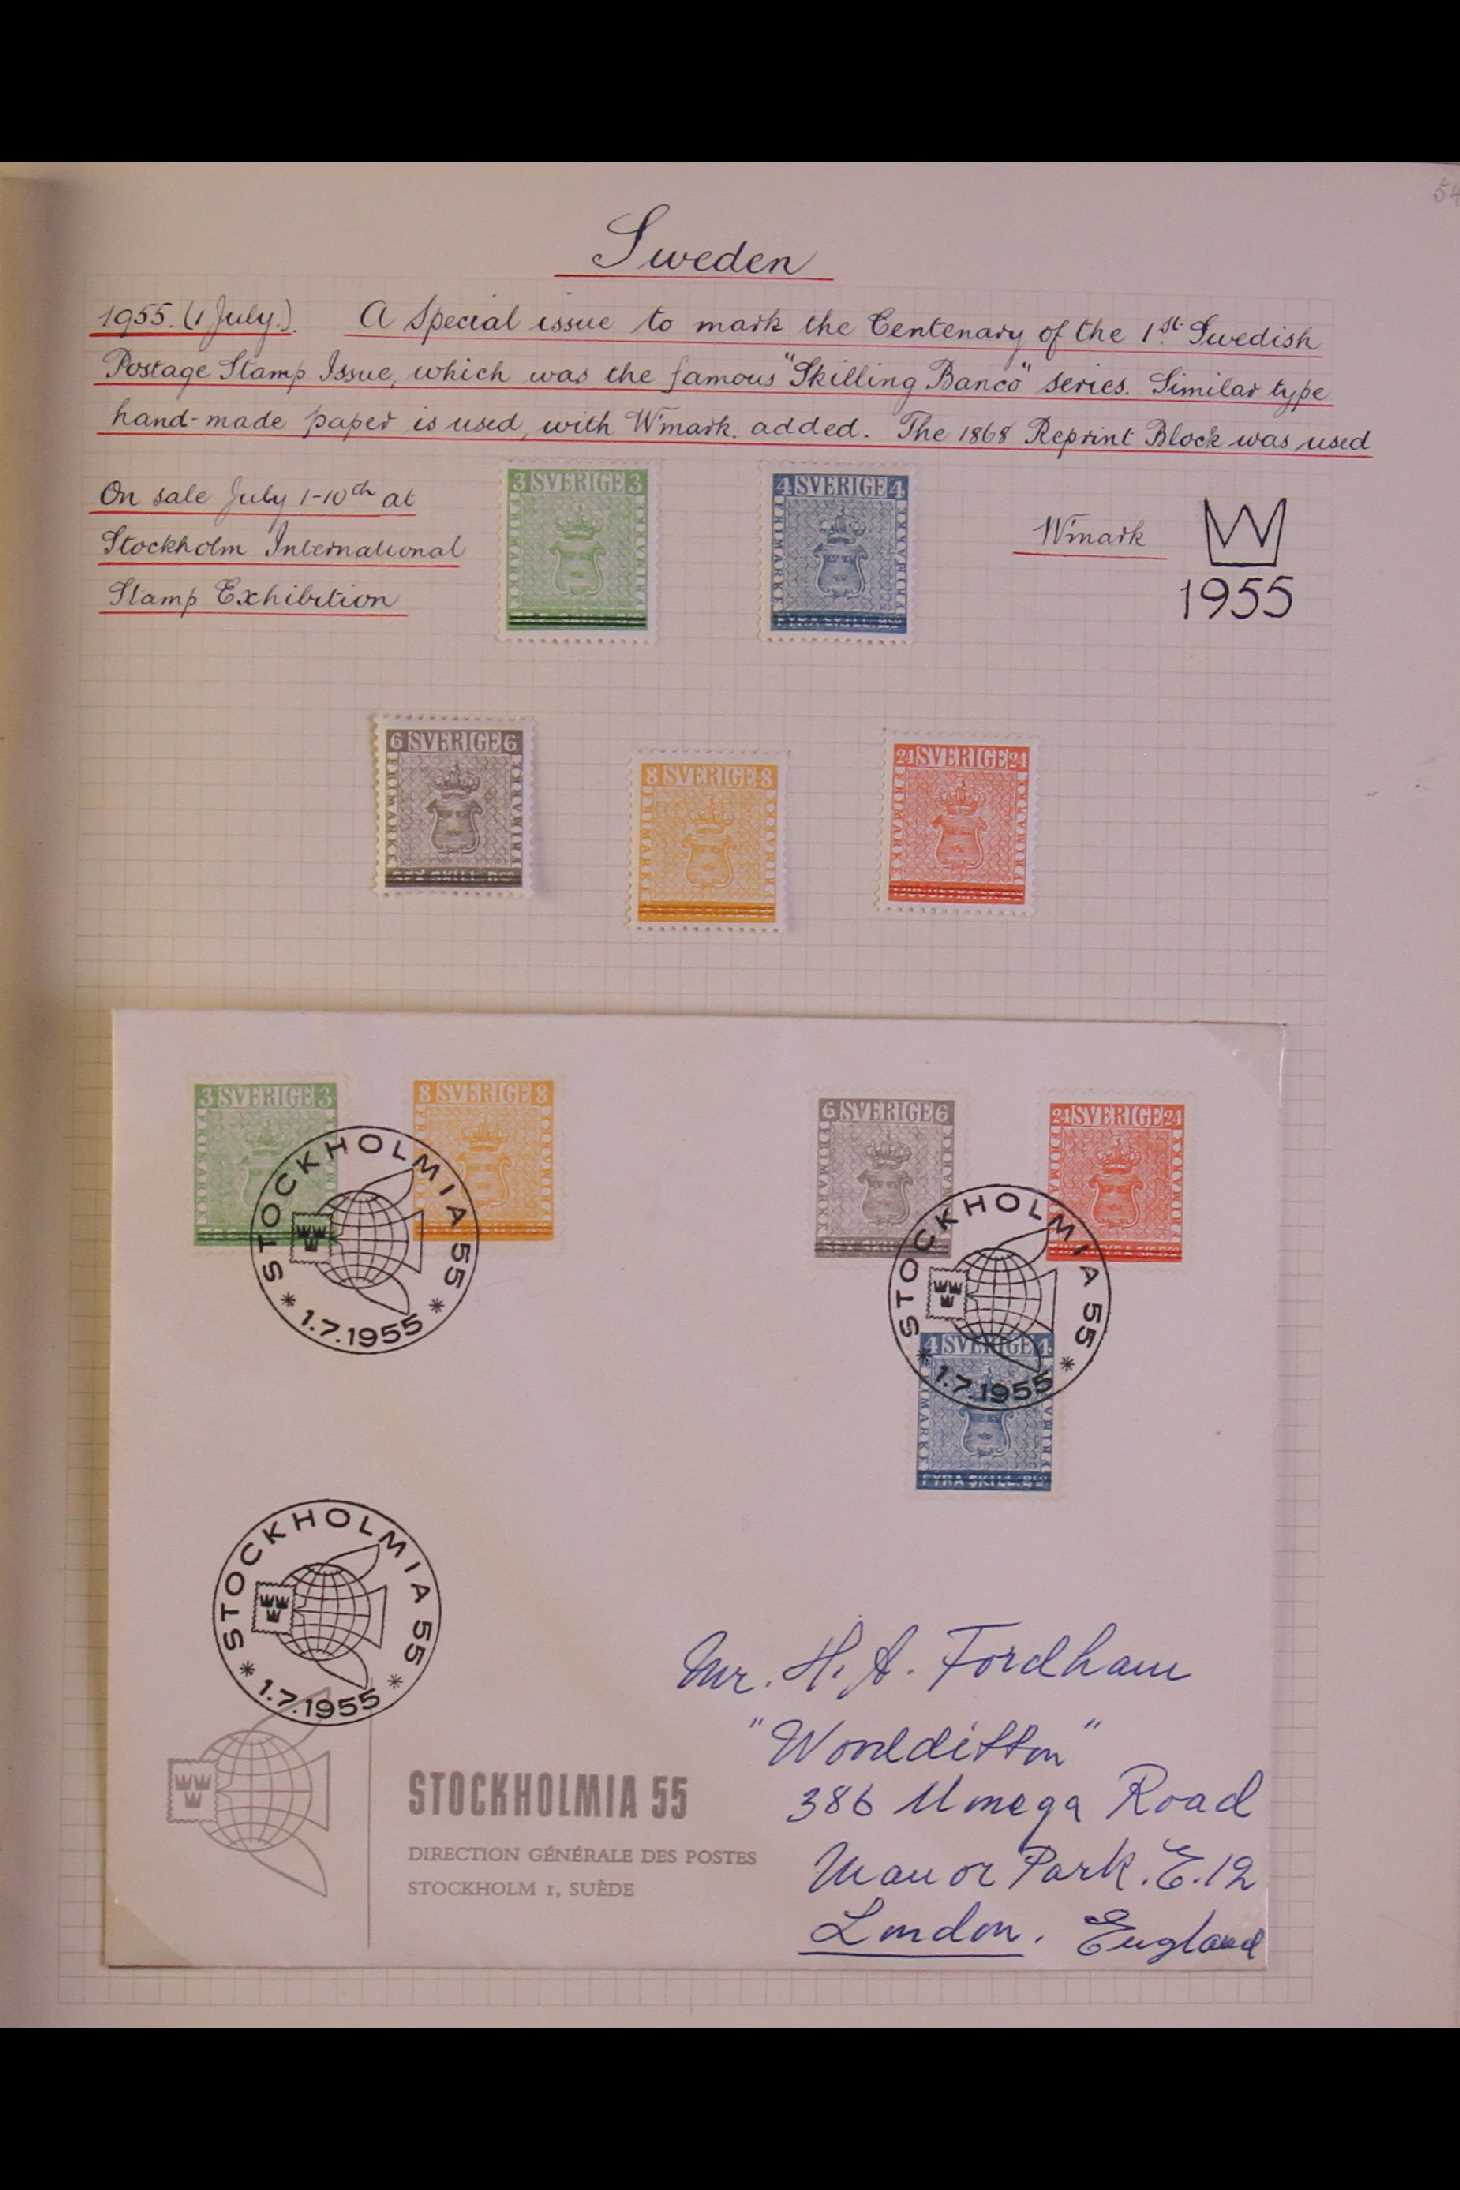 SWEDEN 1903-1966 USED COLLECTION incl. 1903 5k GPO, 1910-19 wmk Crown set, 1916 Landstorm surcharges - Image 10 of 12